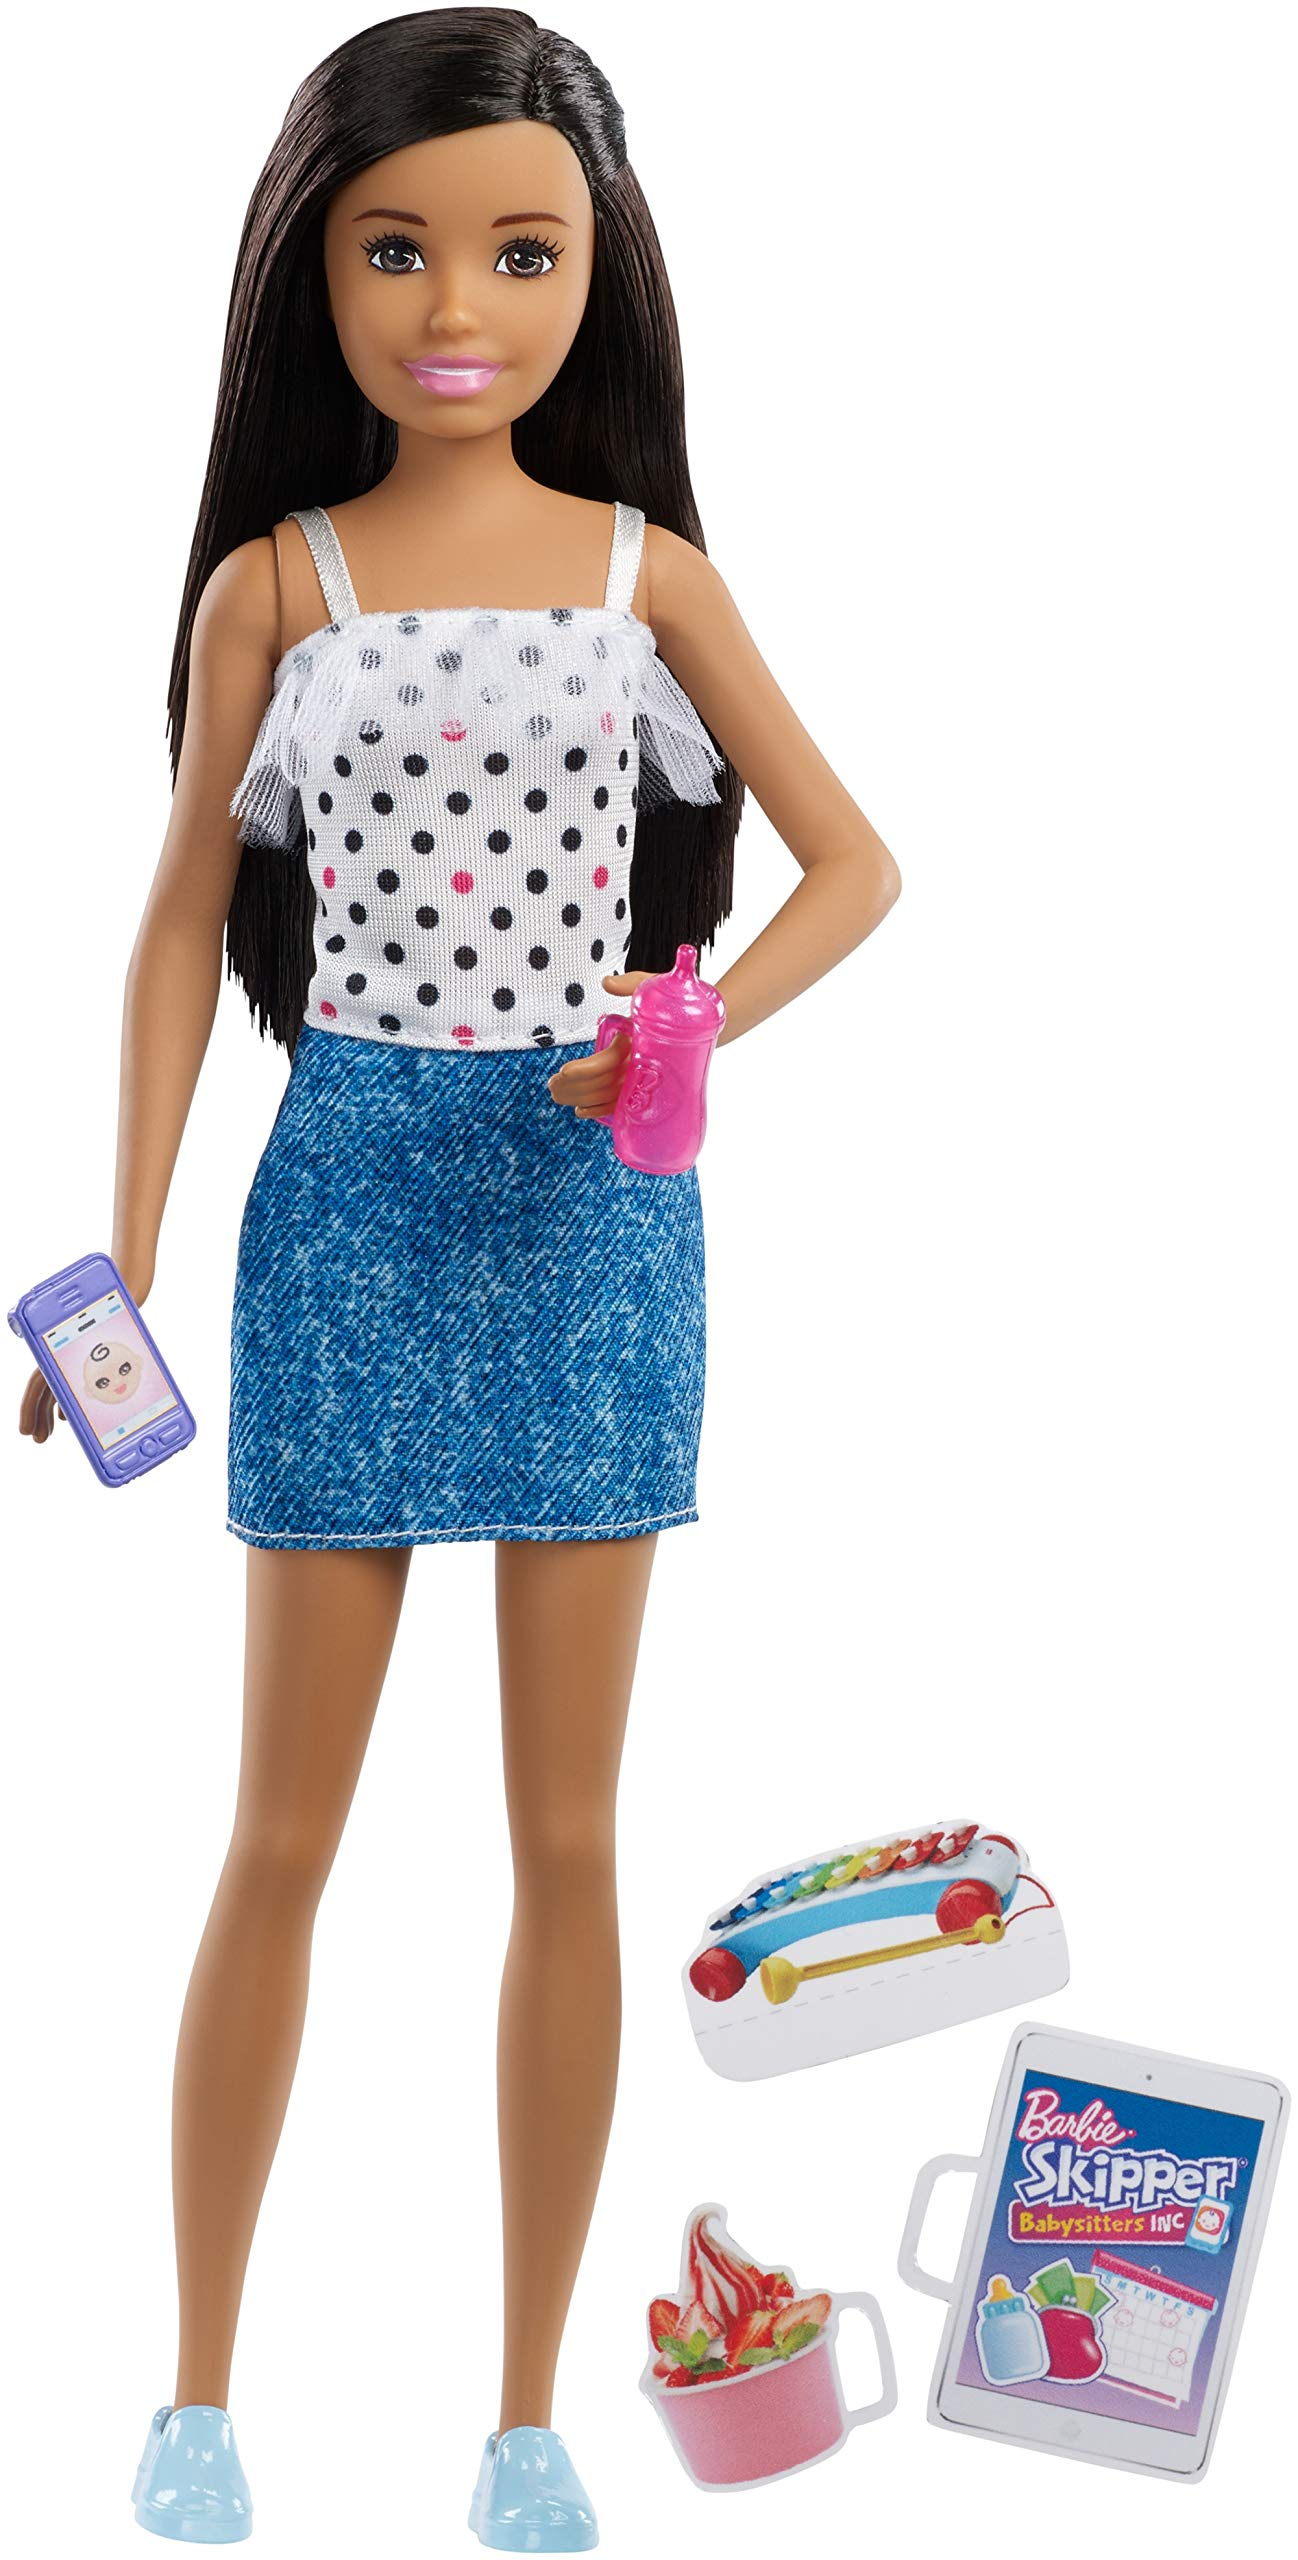 Barbie Skipper Babysitter Doll, Brunette